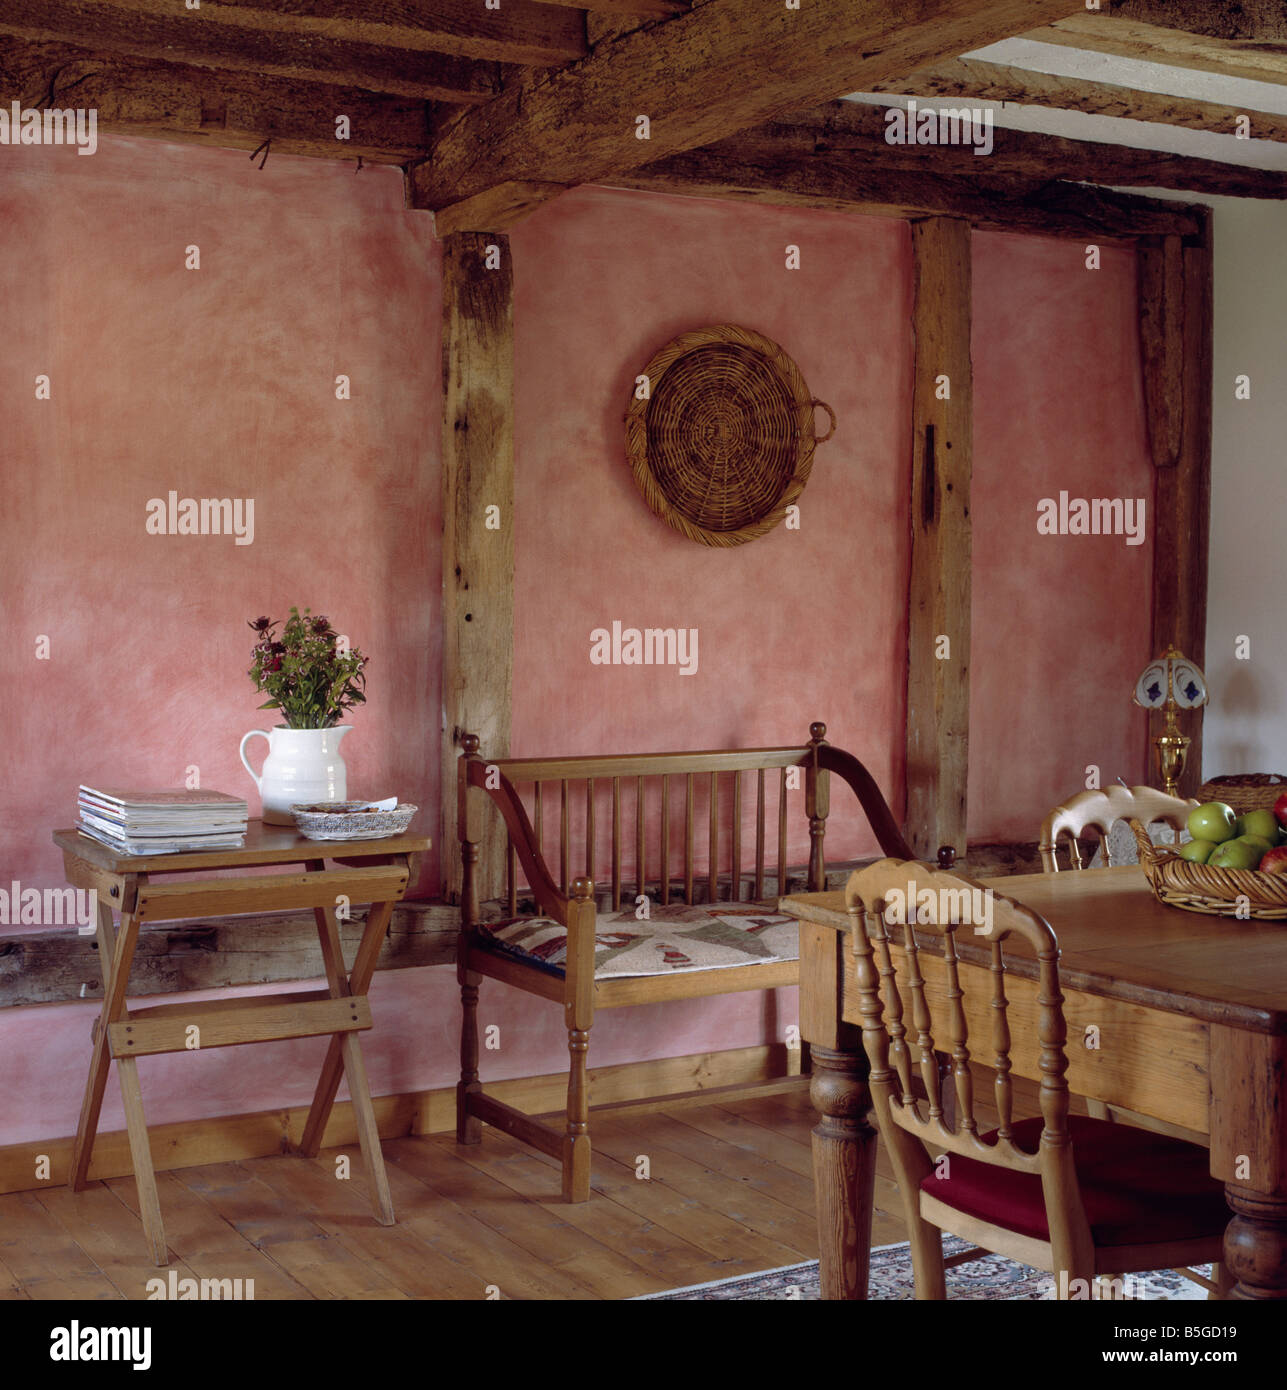 Terracotta paint effect sponged walls in cottage dining room with wooden  chairs and table